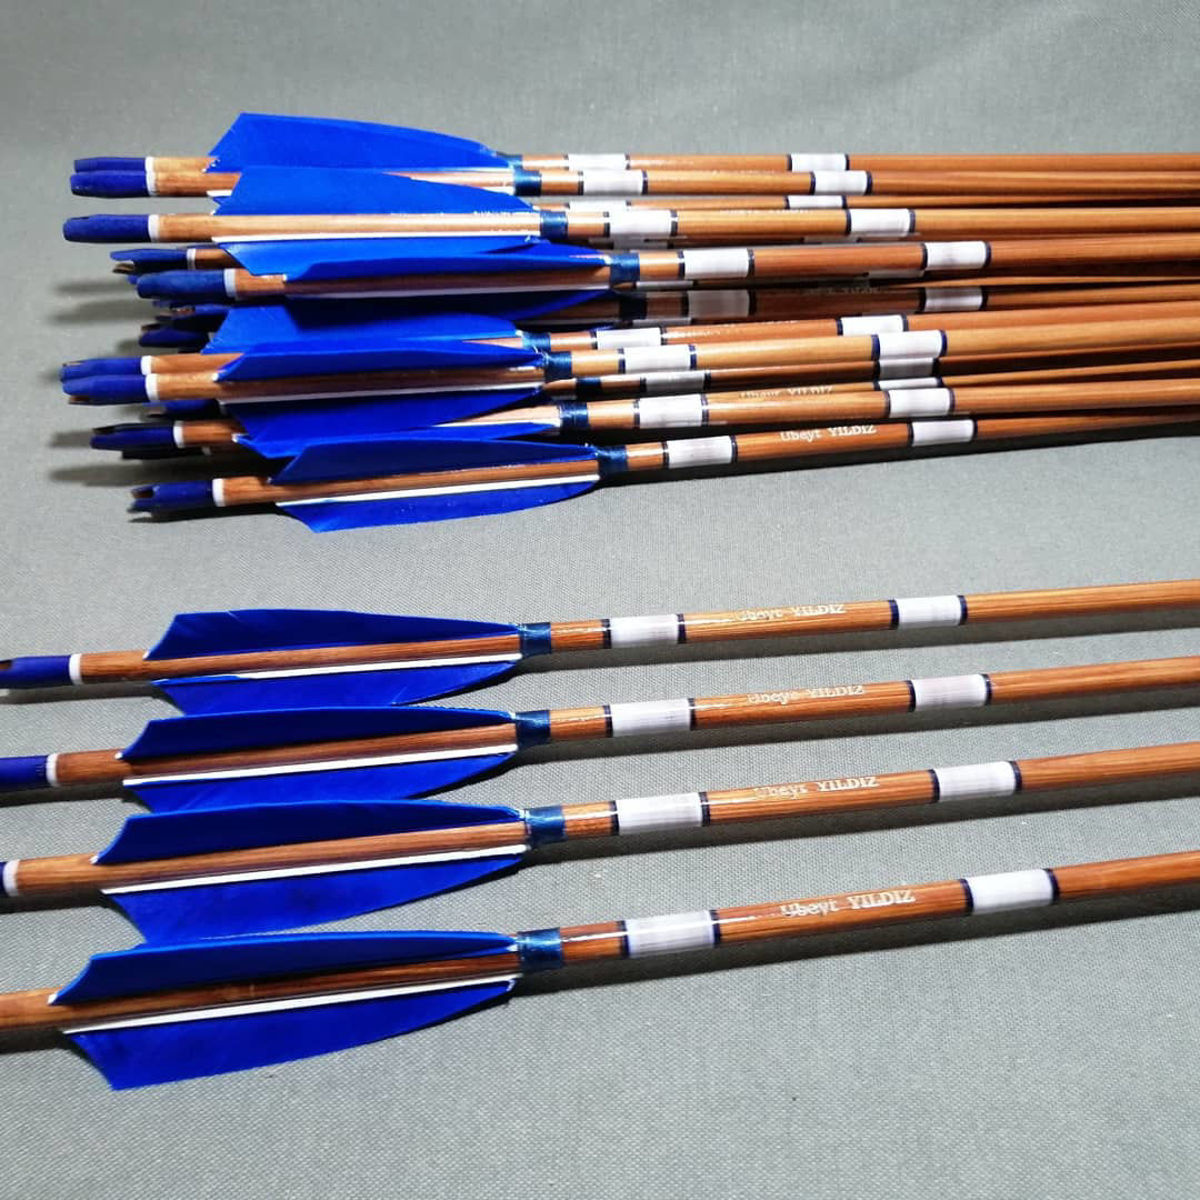 Picture of Wooden Barrelled Crested Arrows Archery Personalized Arrow For Recurve Bow Longbow Medieval Traditional Ottoman Hunting Shoot with Blue  Turkey Feather